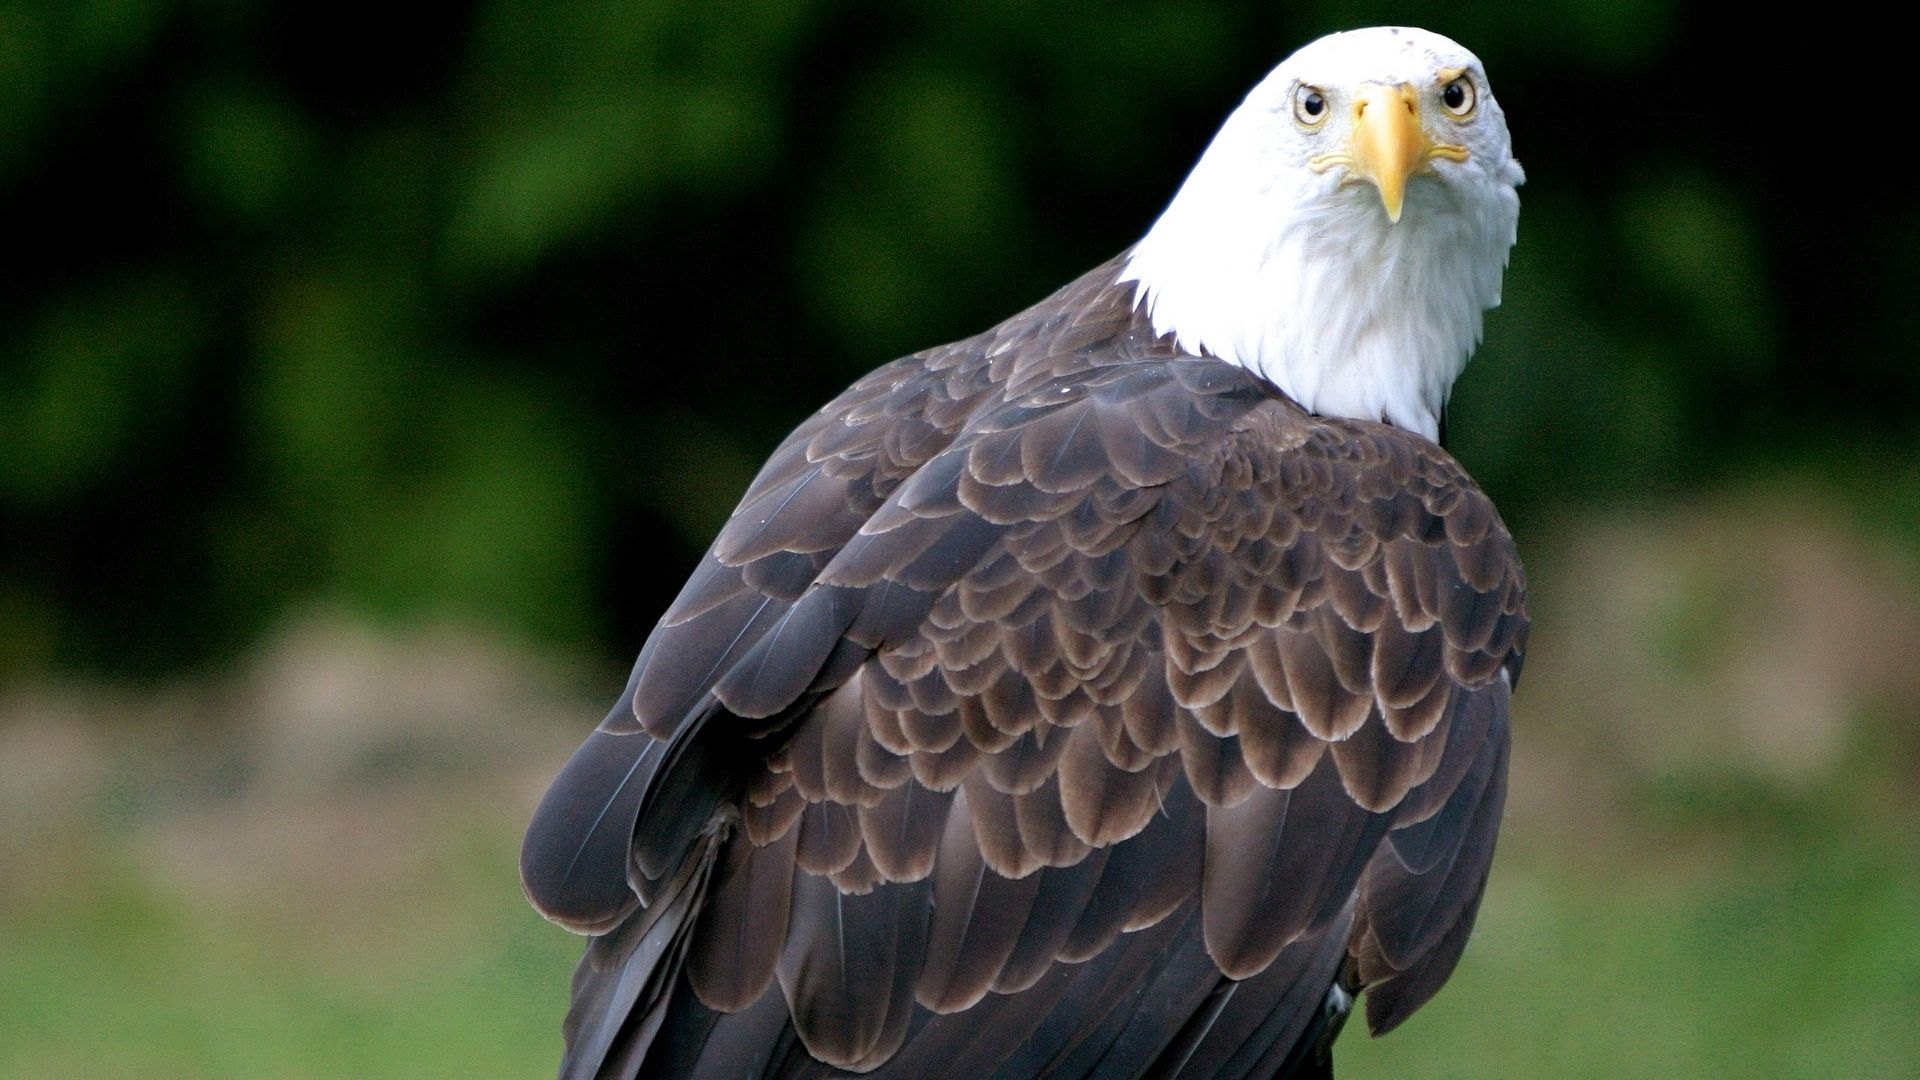 76724 download wallpaper Animals, Eagle, Bald Eagle, White-Headed Eagle, Predator, Bird screensavers and pictures for free